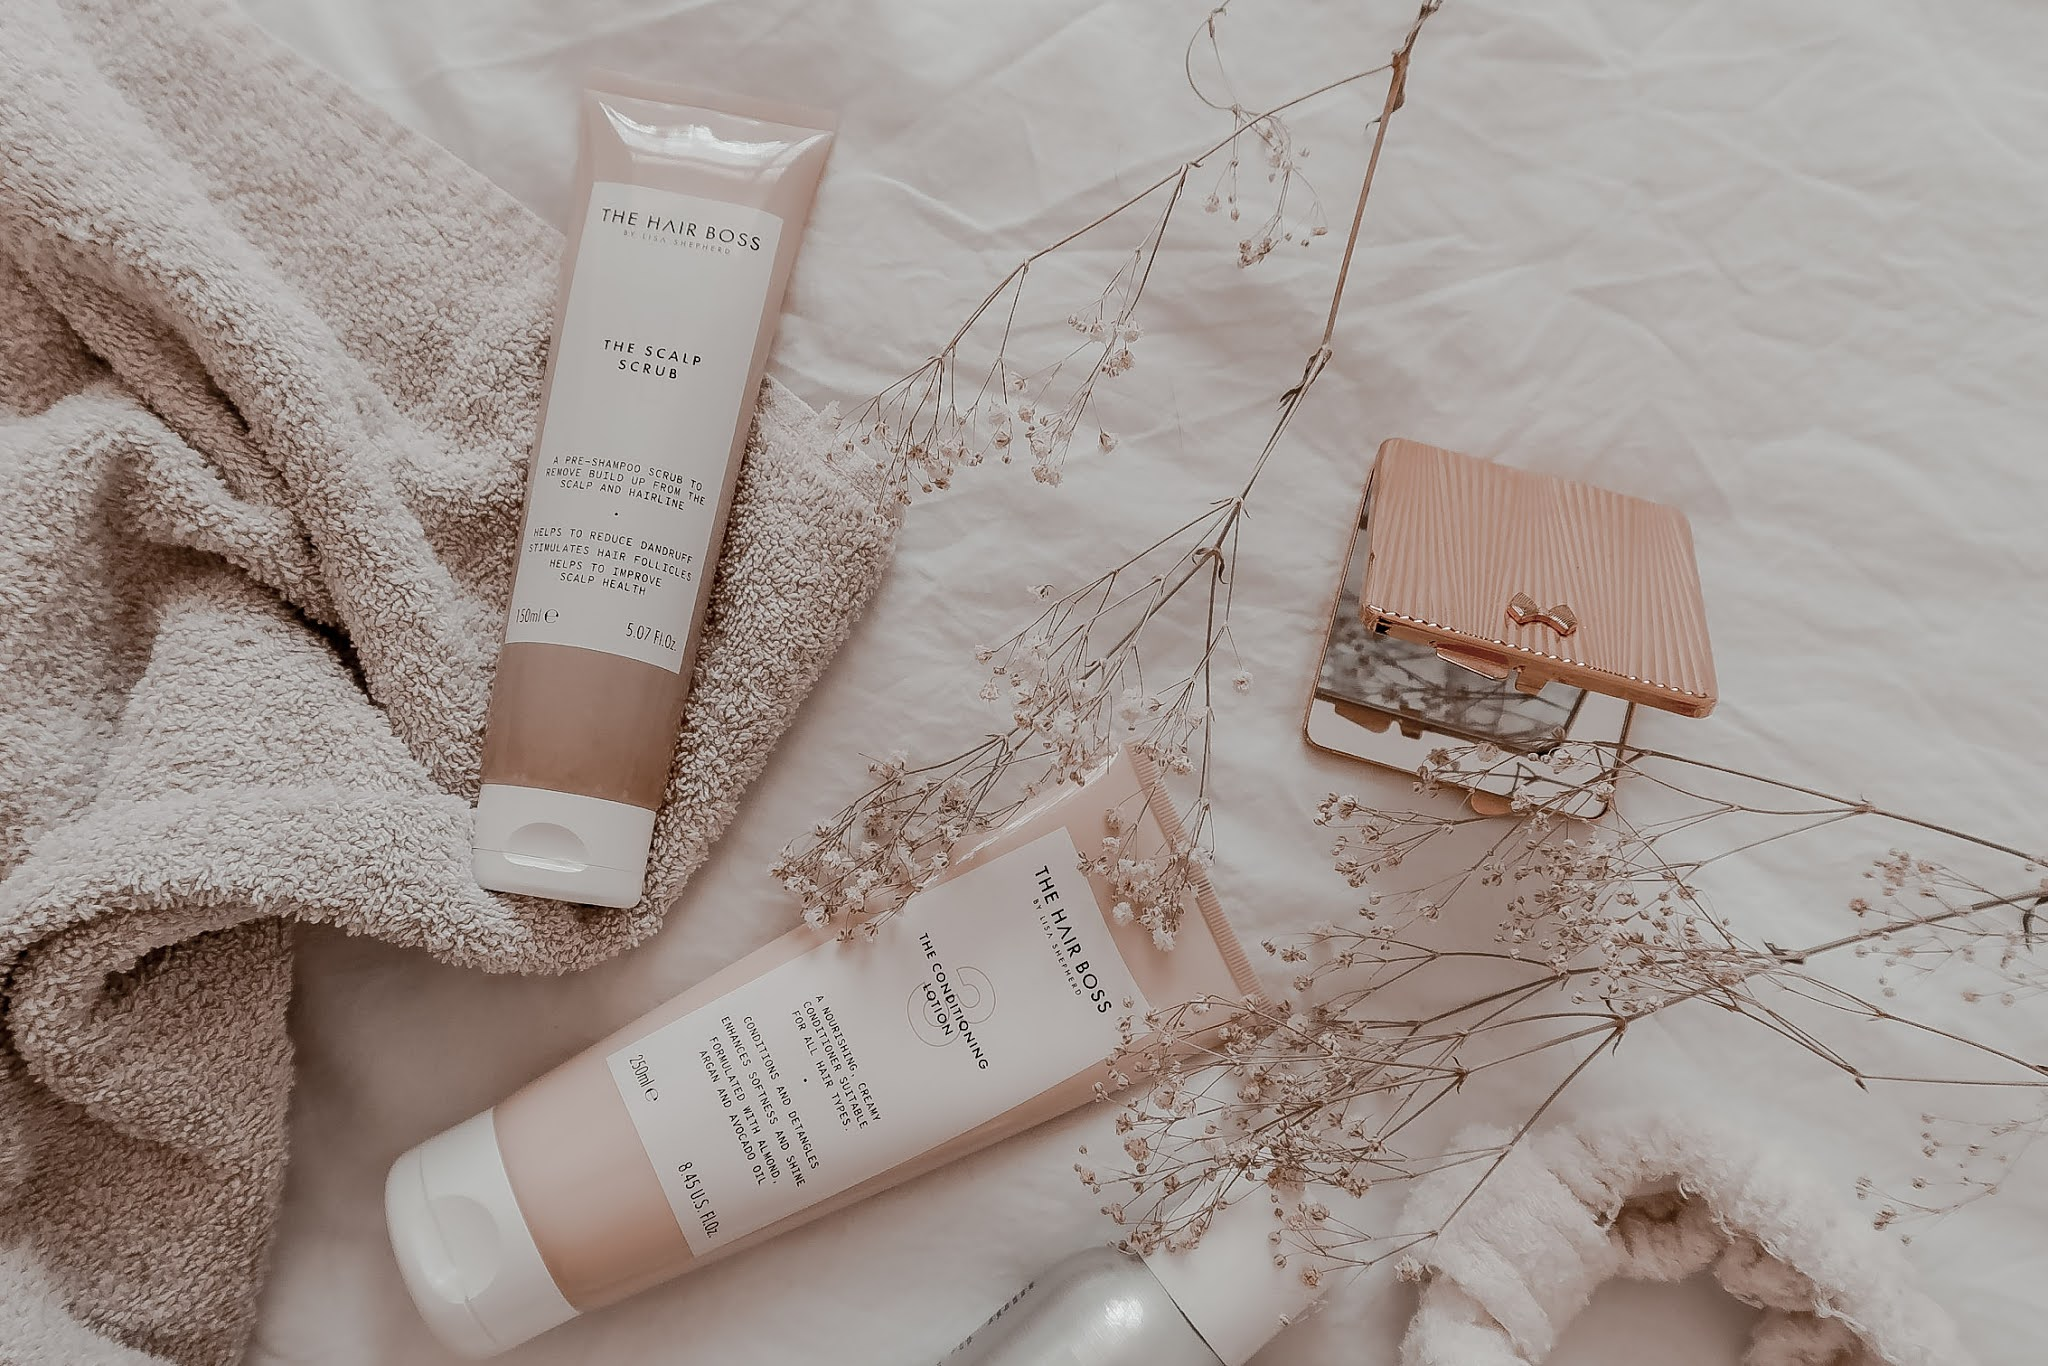 The Hair Boss Products: A Review